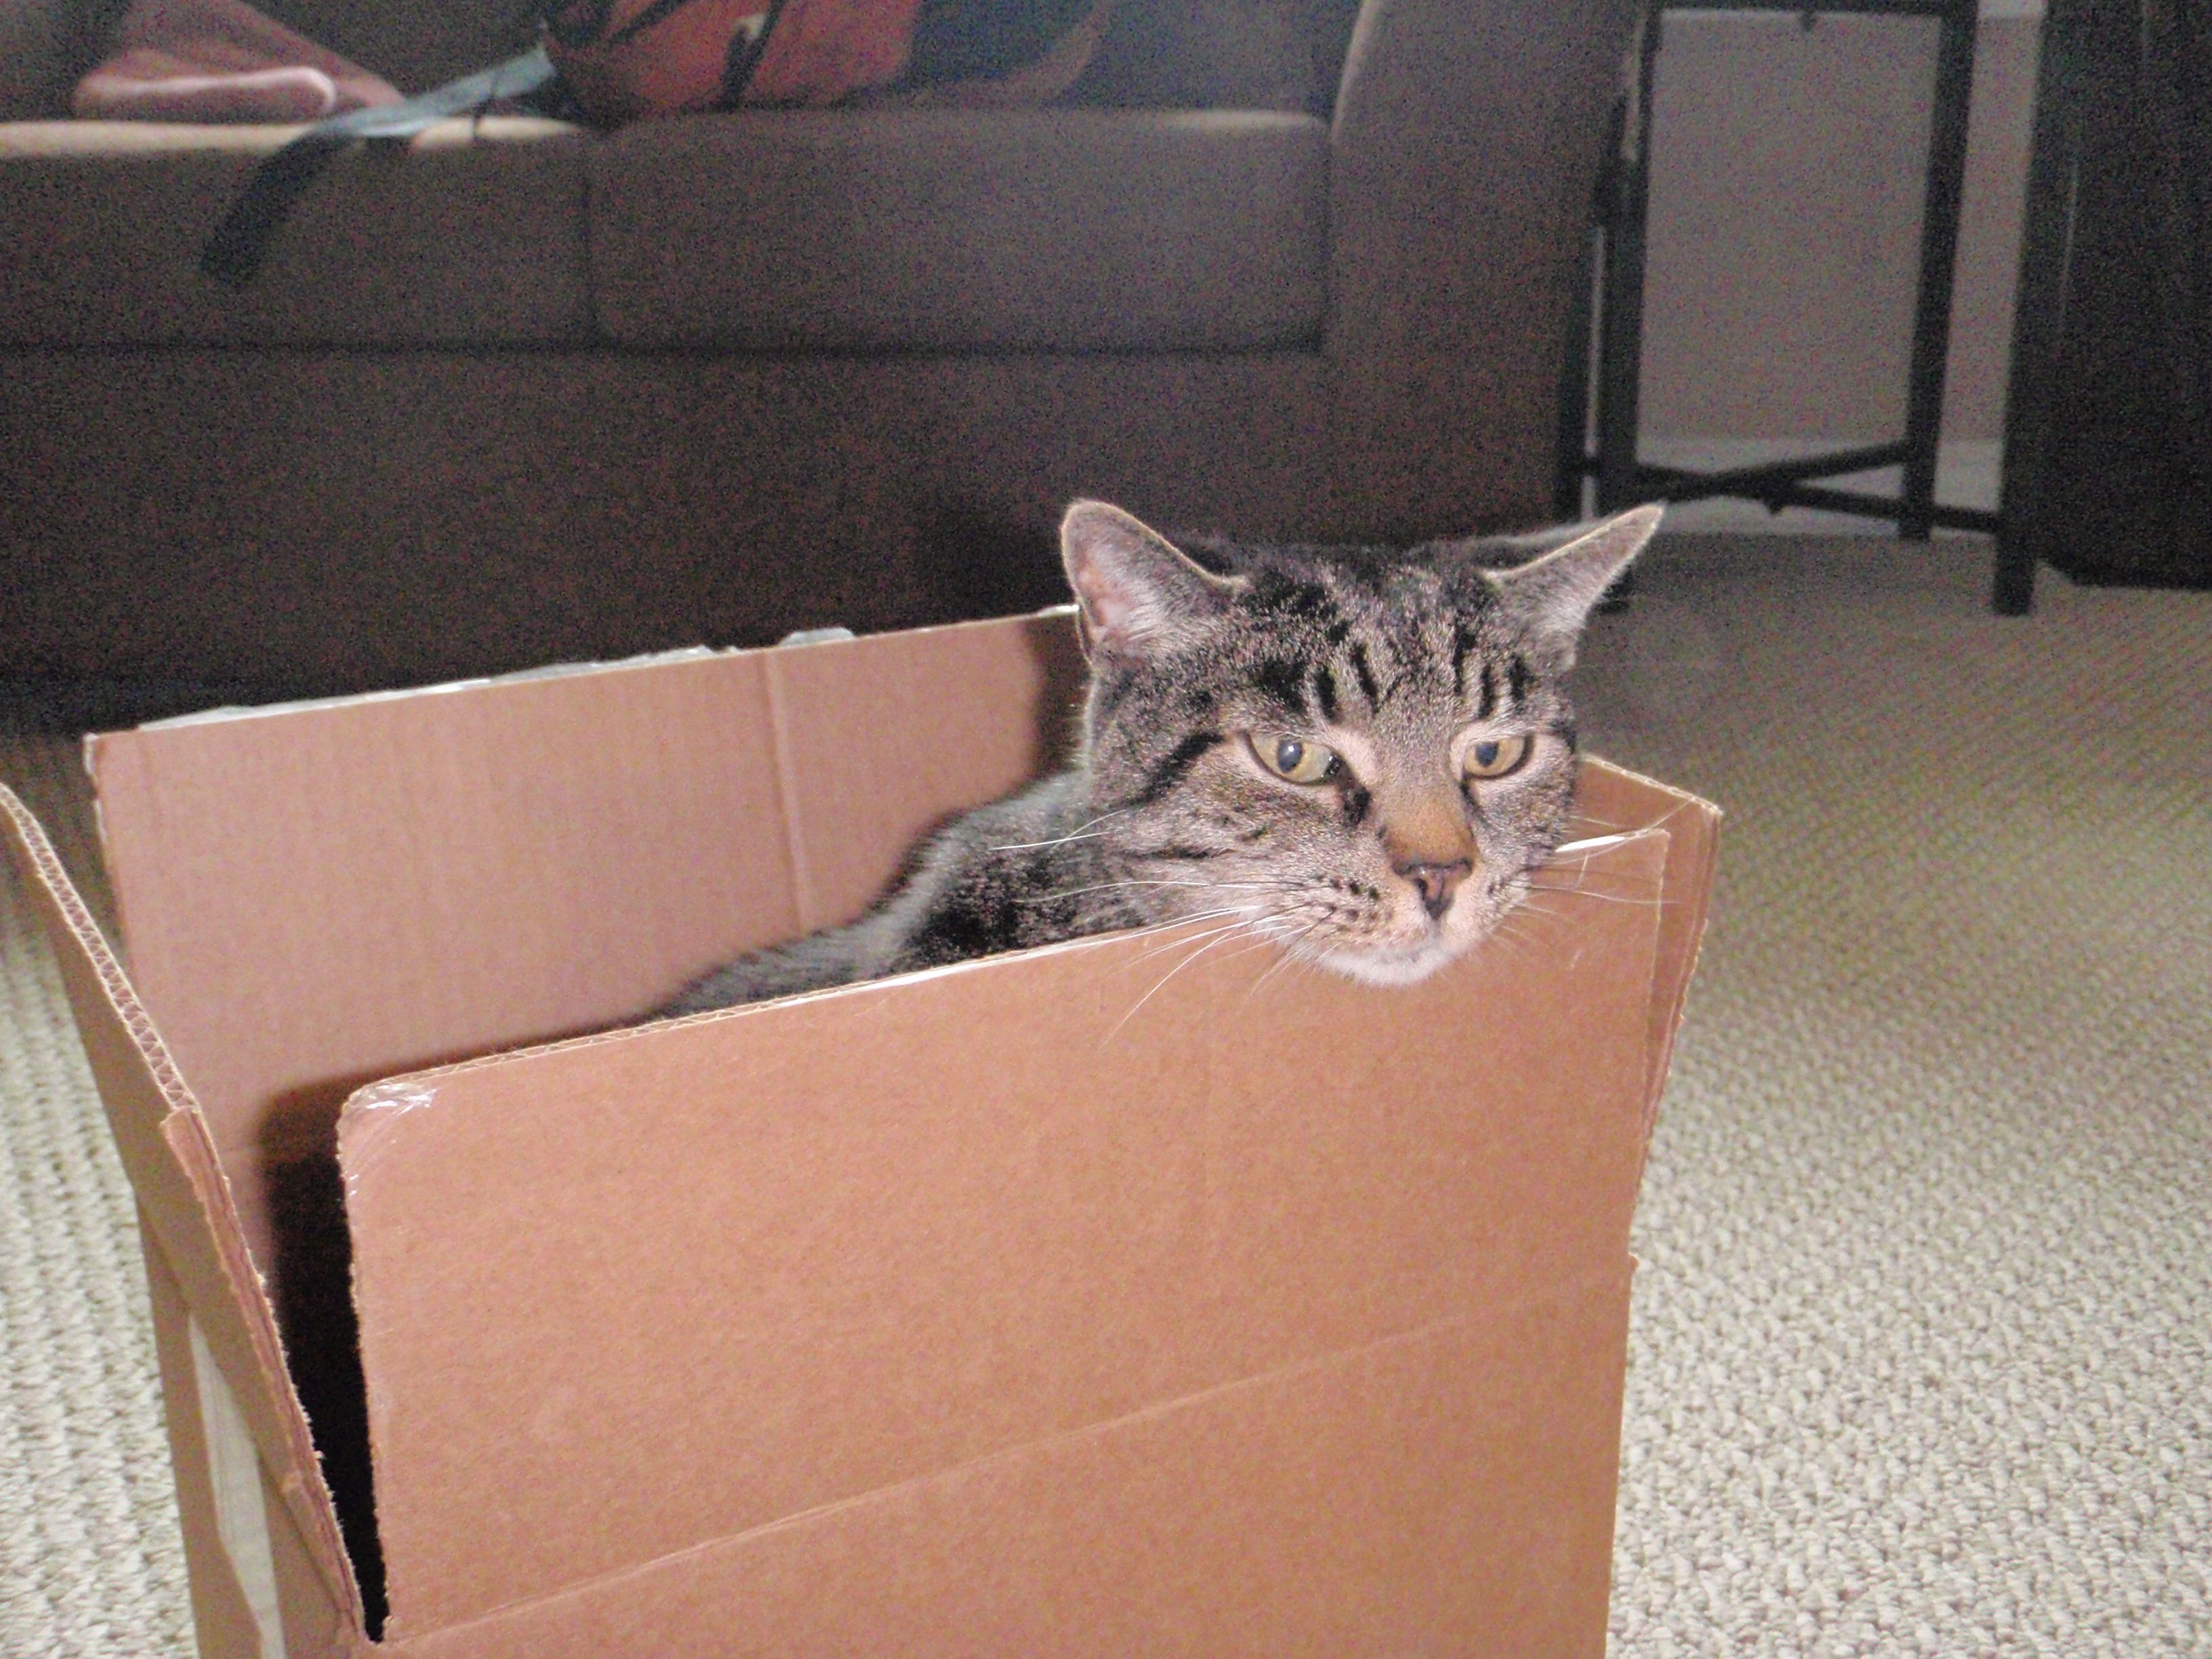 How to catch a cat 1 get a box cats